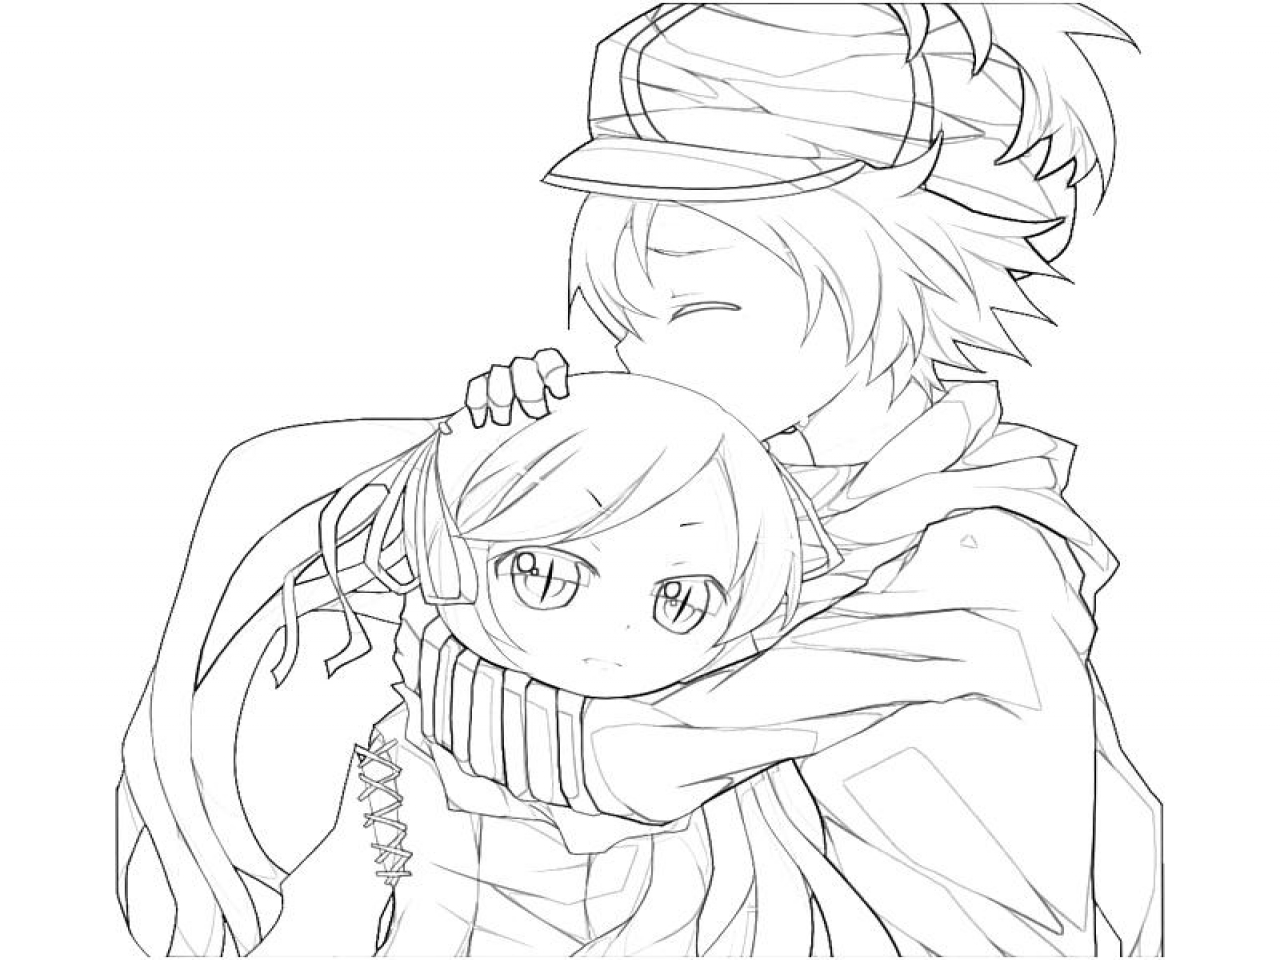 1280x960 Anime Boy Coloring Pages Cute Girl Gianfreda